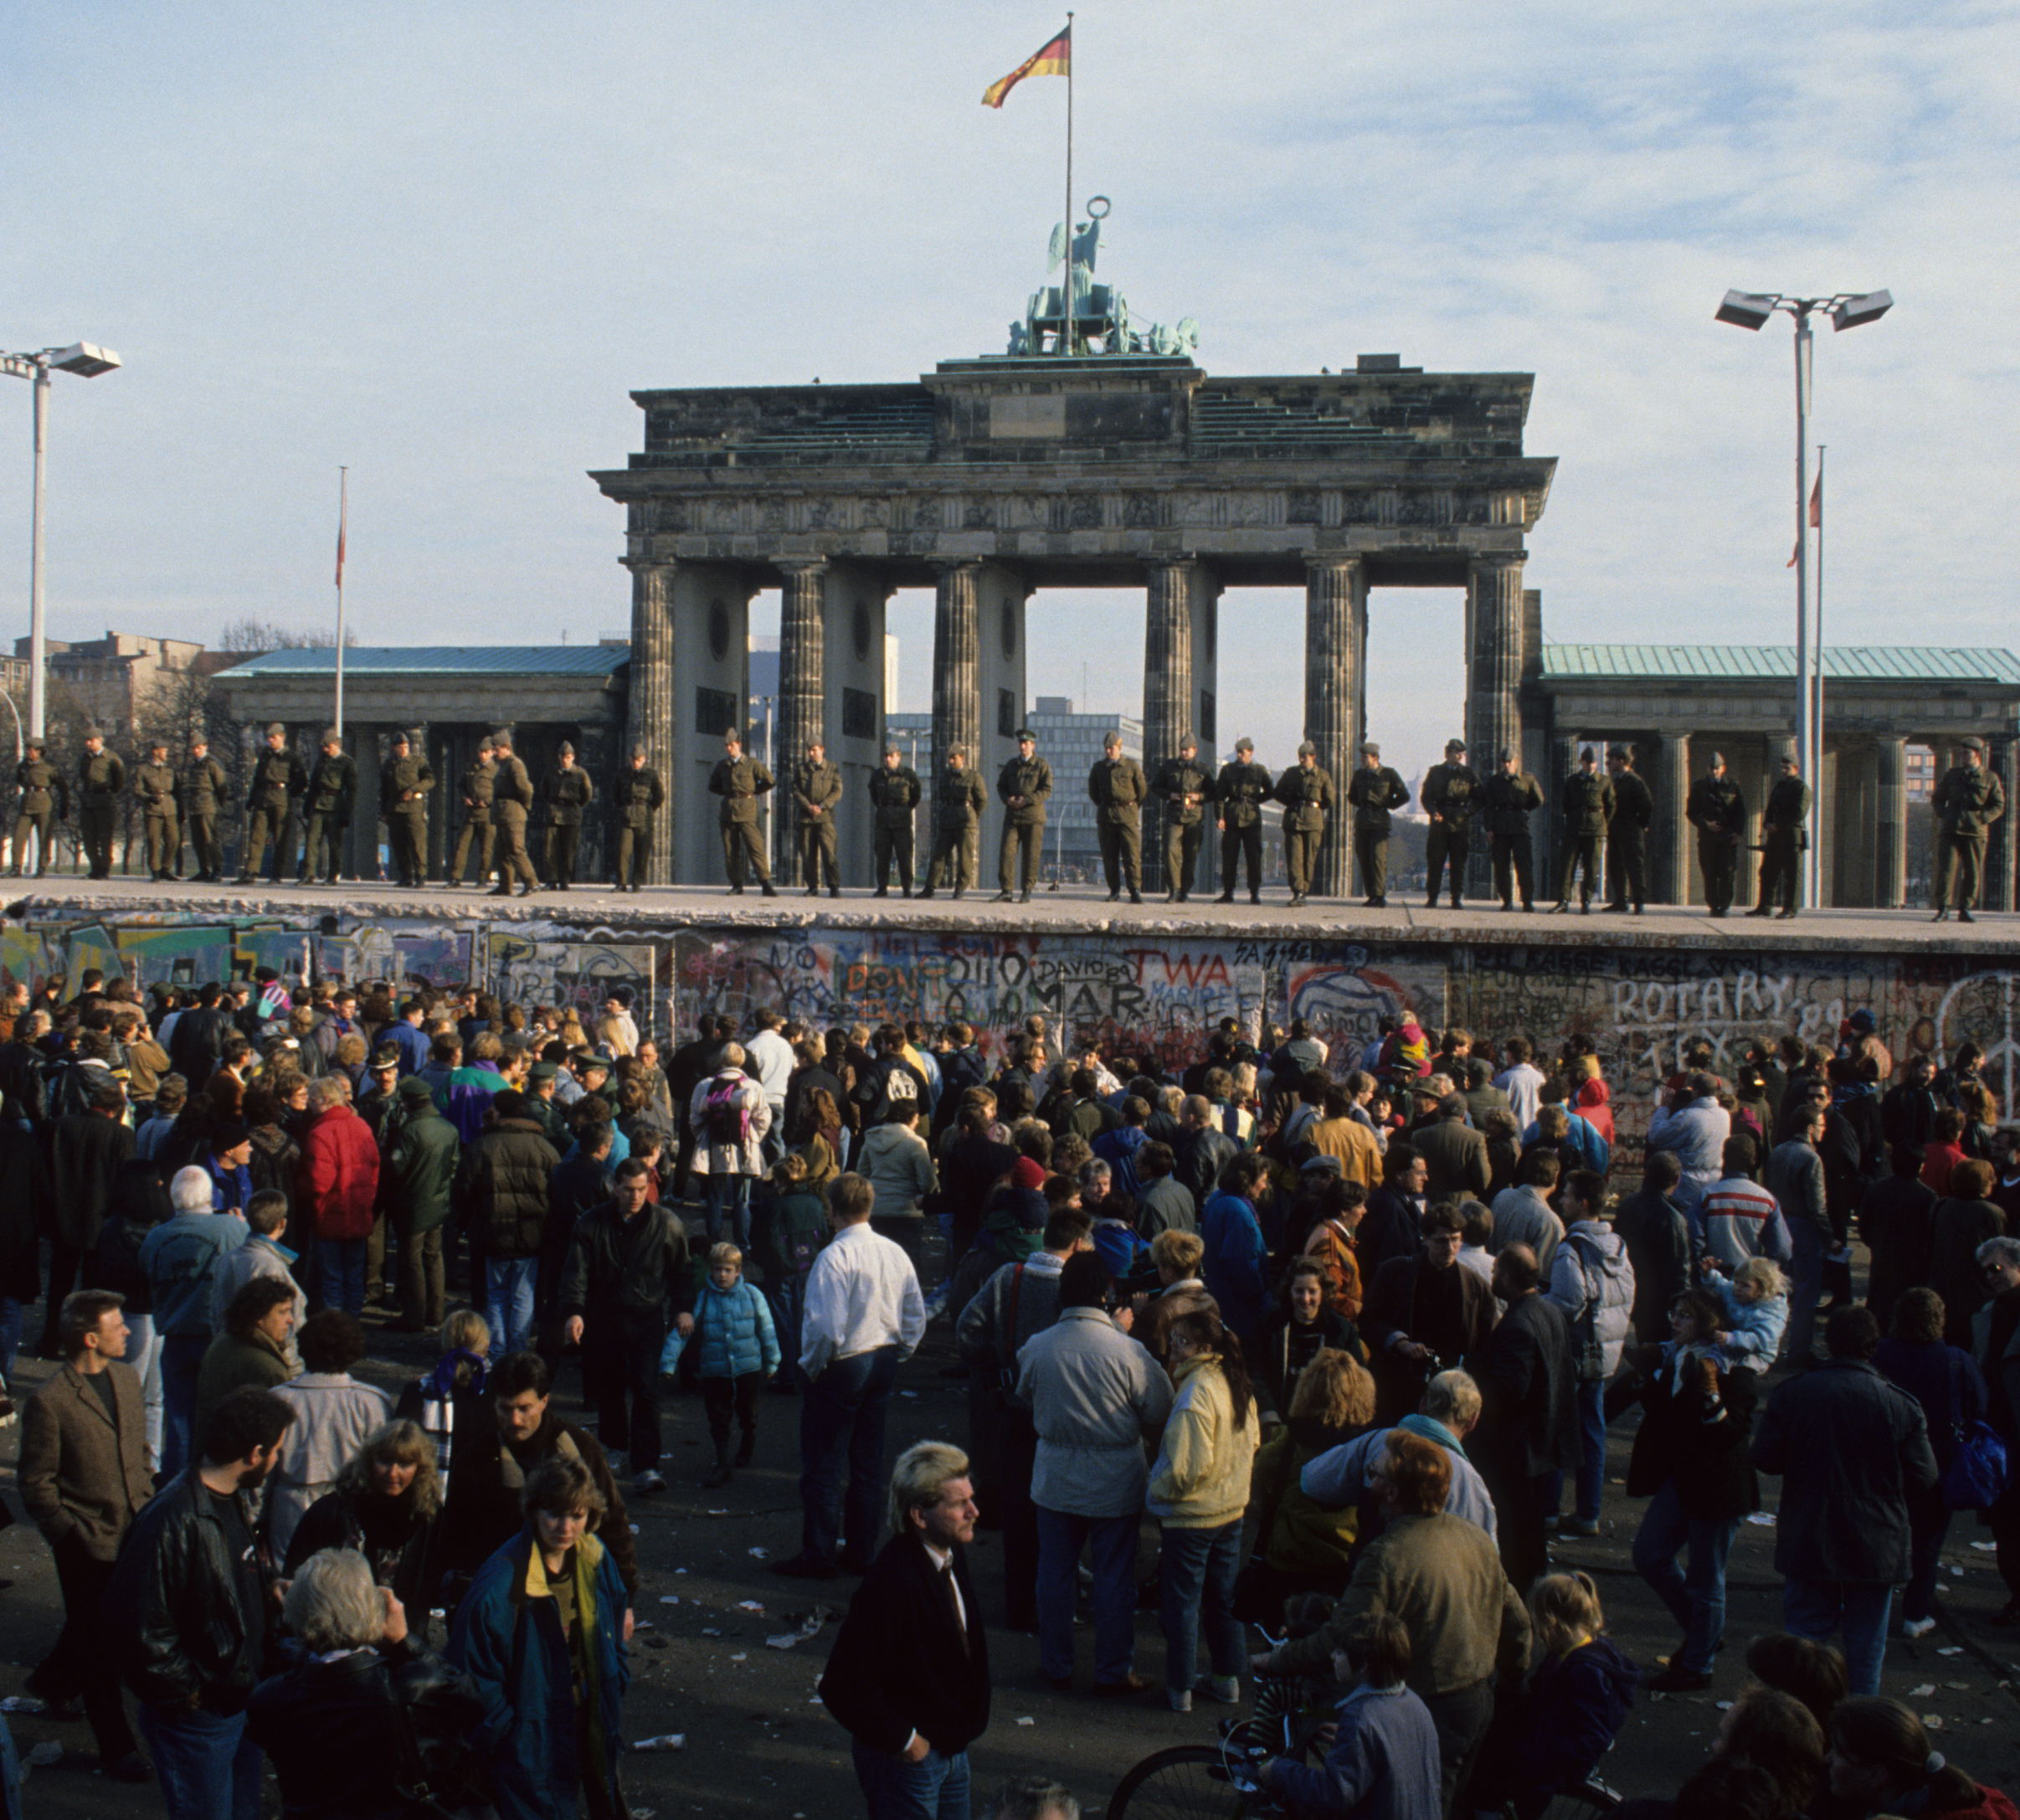 East German soldiers standing atop the Berlin Wall at Brandenburg Gate, November 1989. Photo courtesy of 25 Archiv Bundesstiftung Aufarbeitung – Uwe Gerig. (www.berlin.de/2013).